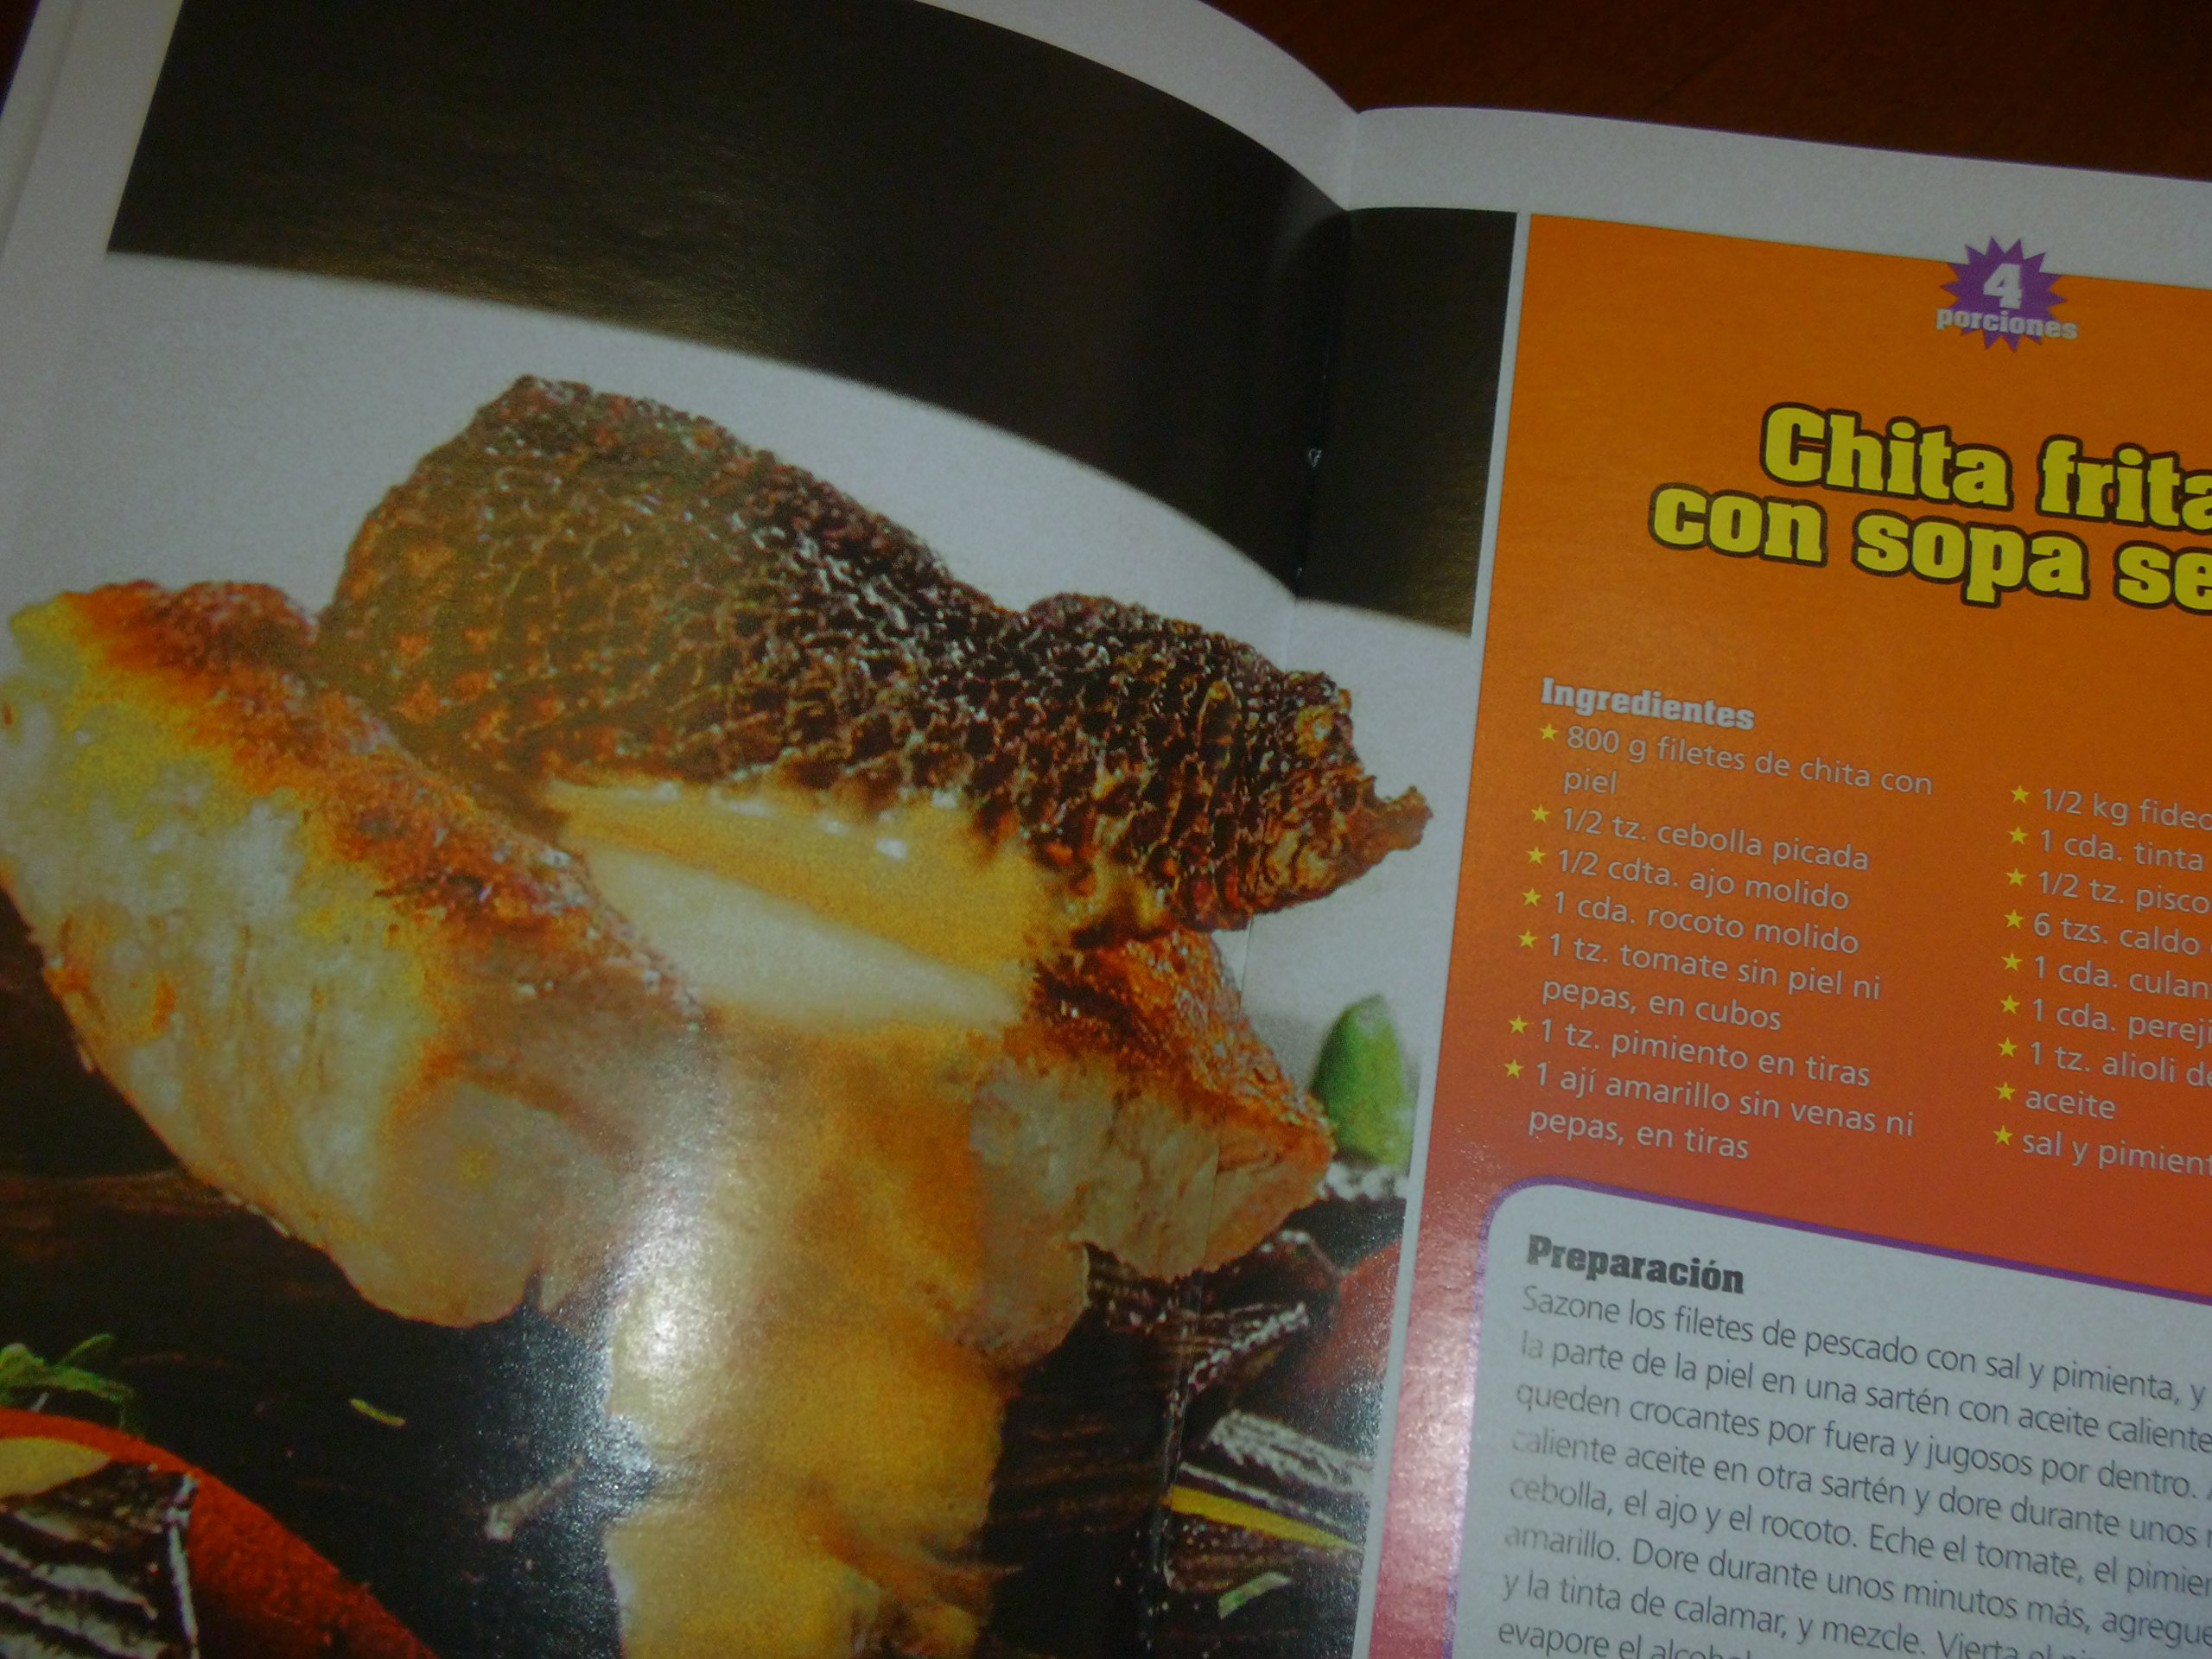 Las Cocinas Regionales Del Peru By Gaston Acurio: Gaston Acurio: 9786124032714: Amazon.com: Books